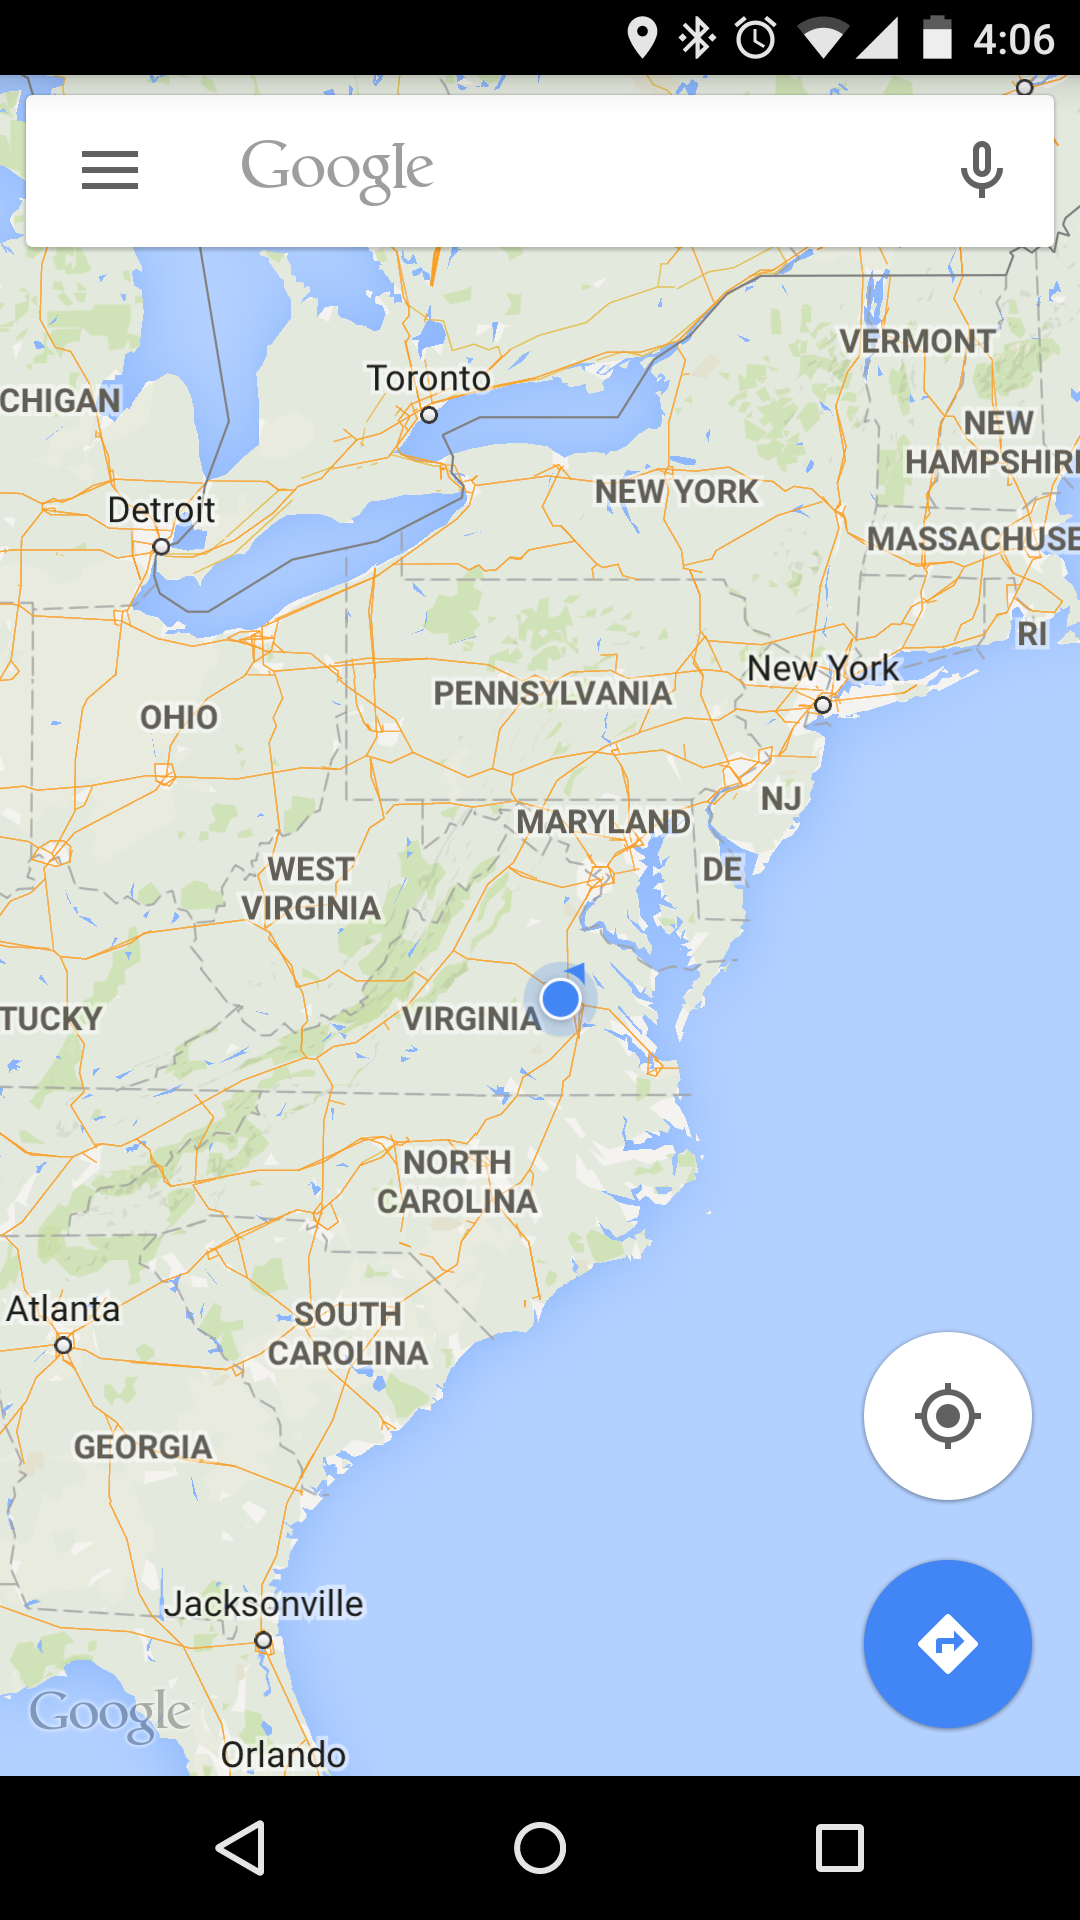 maps maps. bug watch google maps fails to load directions when prompted from